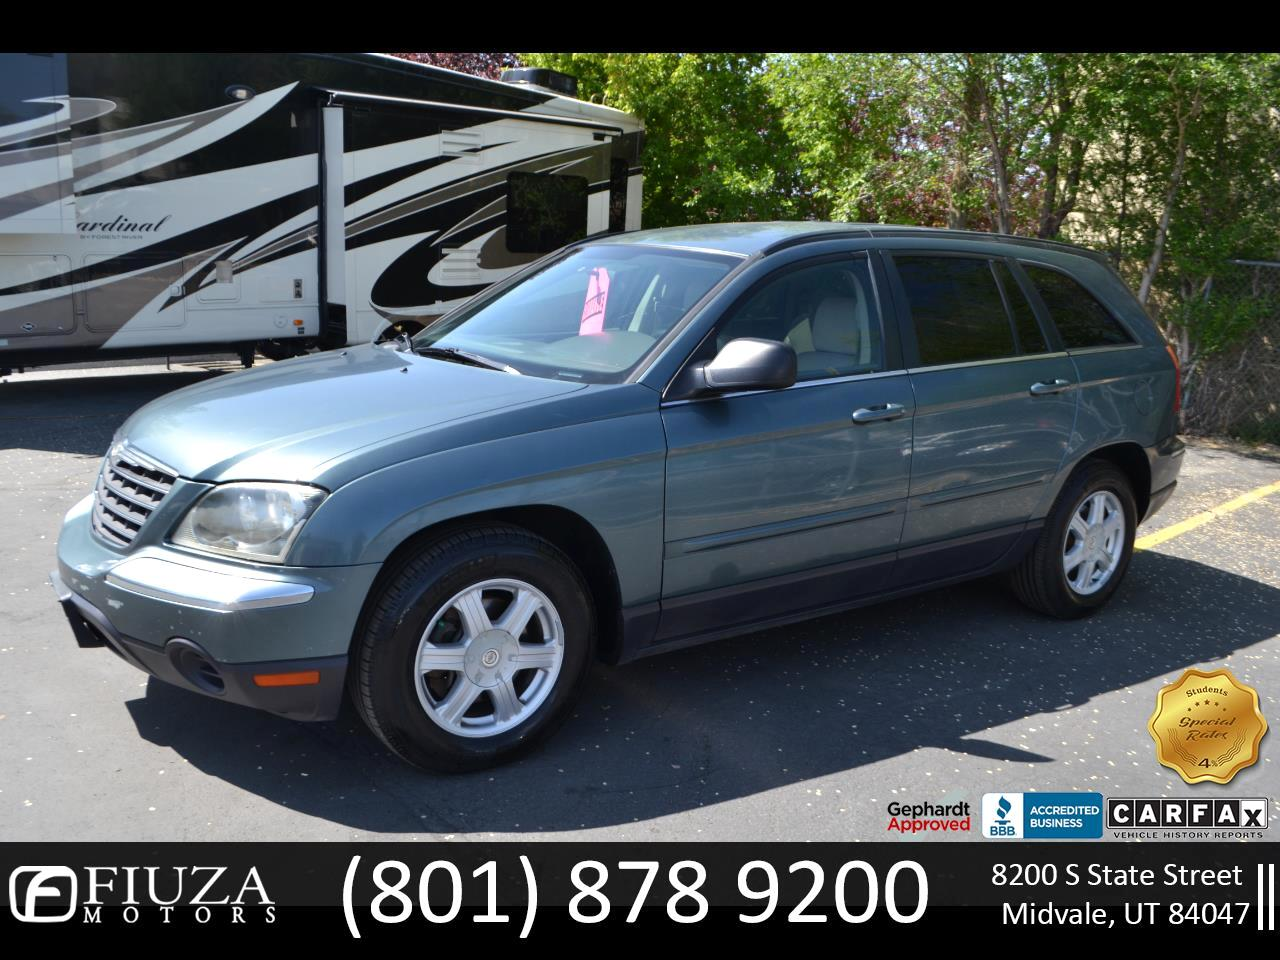 Chrysler Pacifica 4dr Wgn Touring AWD 2006